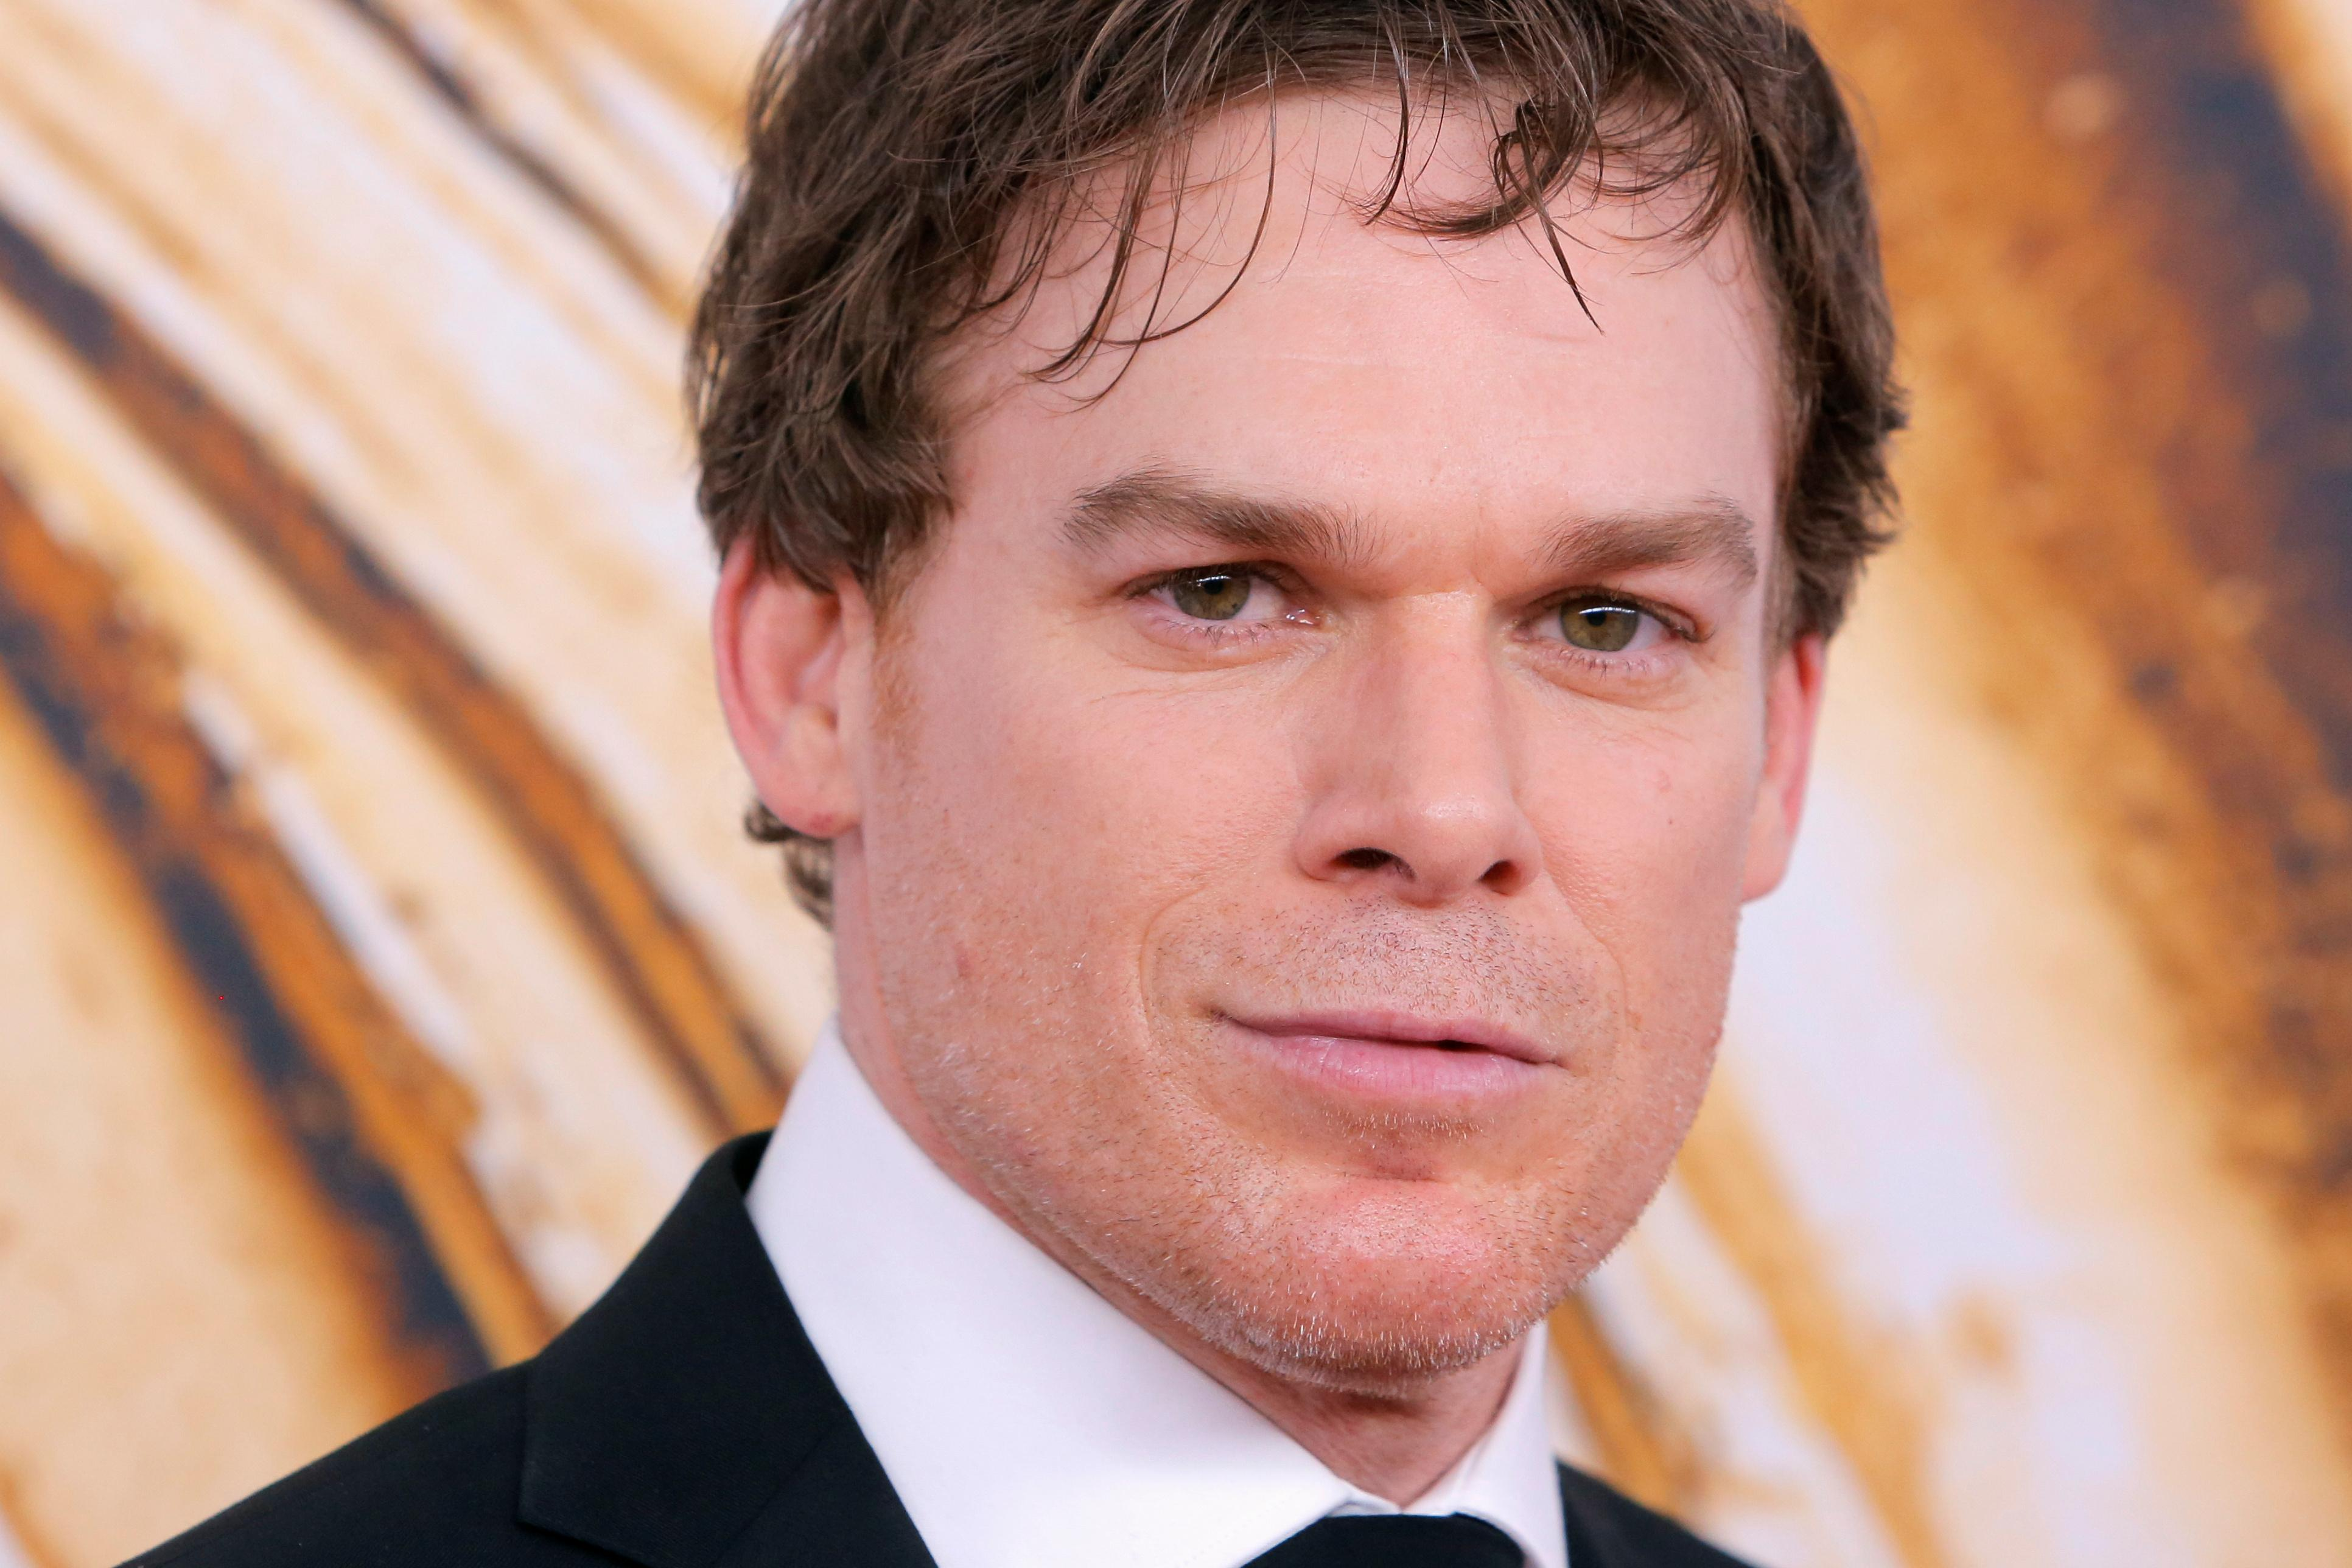 'Dexter' Actor Michael C. Hall To Star In Netflix Series 'The Crown' Season 2, Who Will He Be Playing?